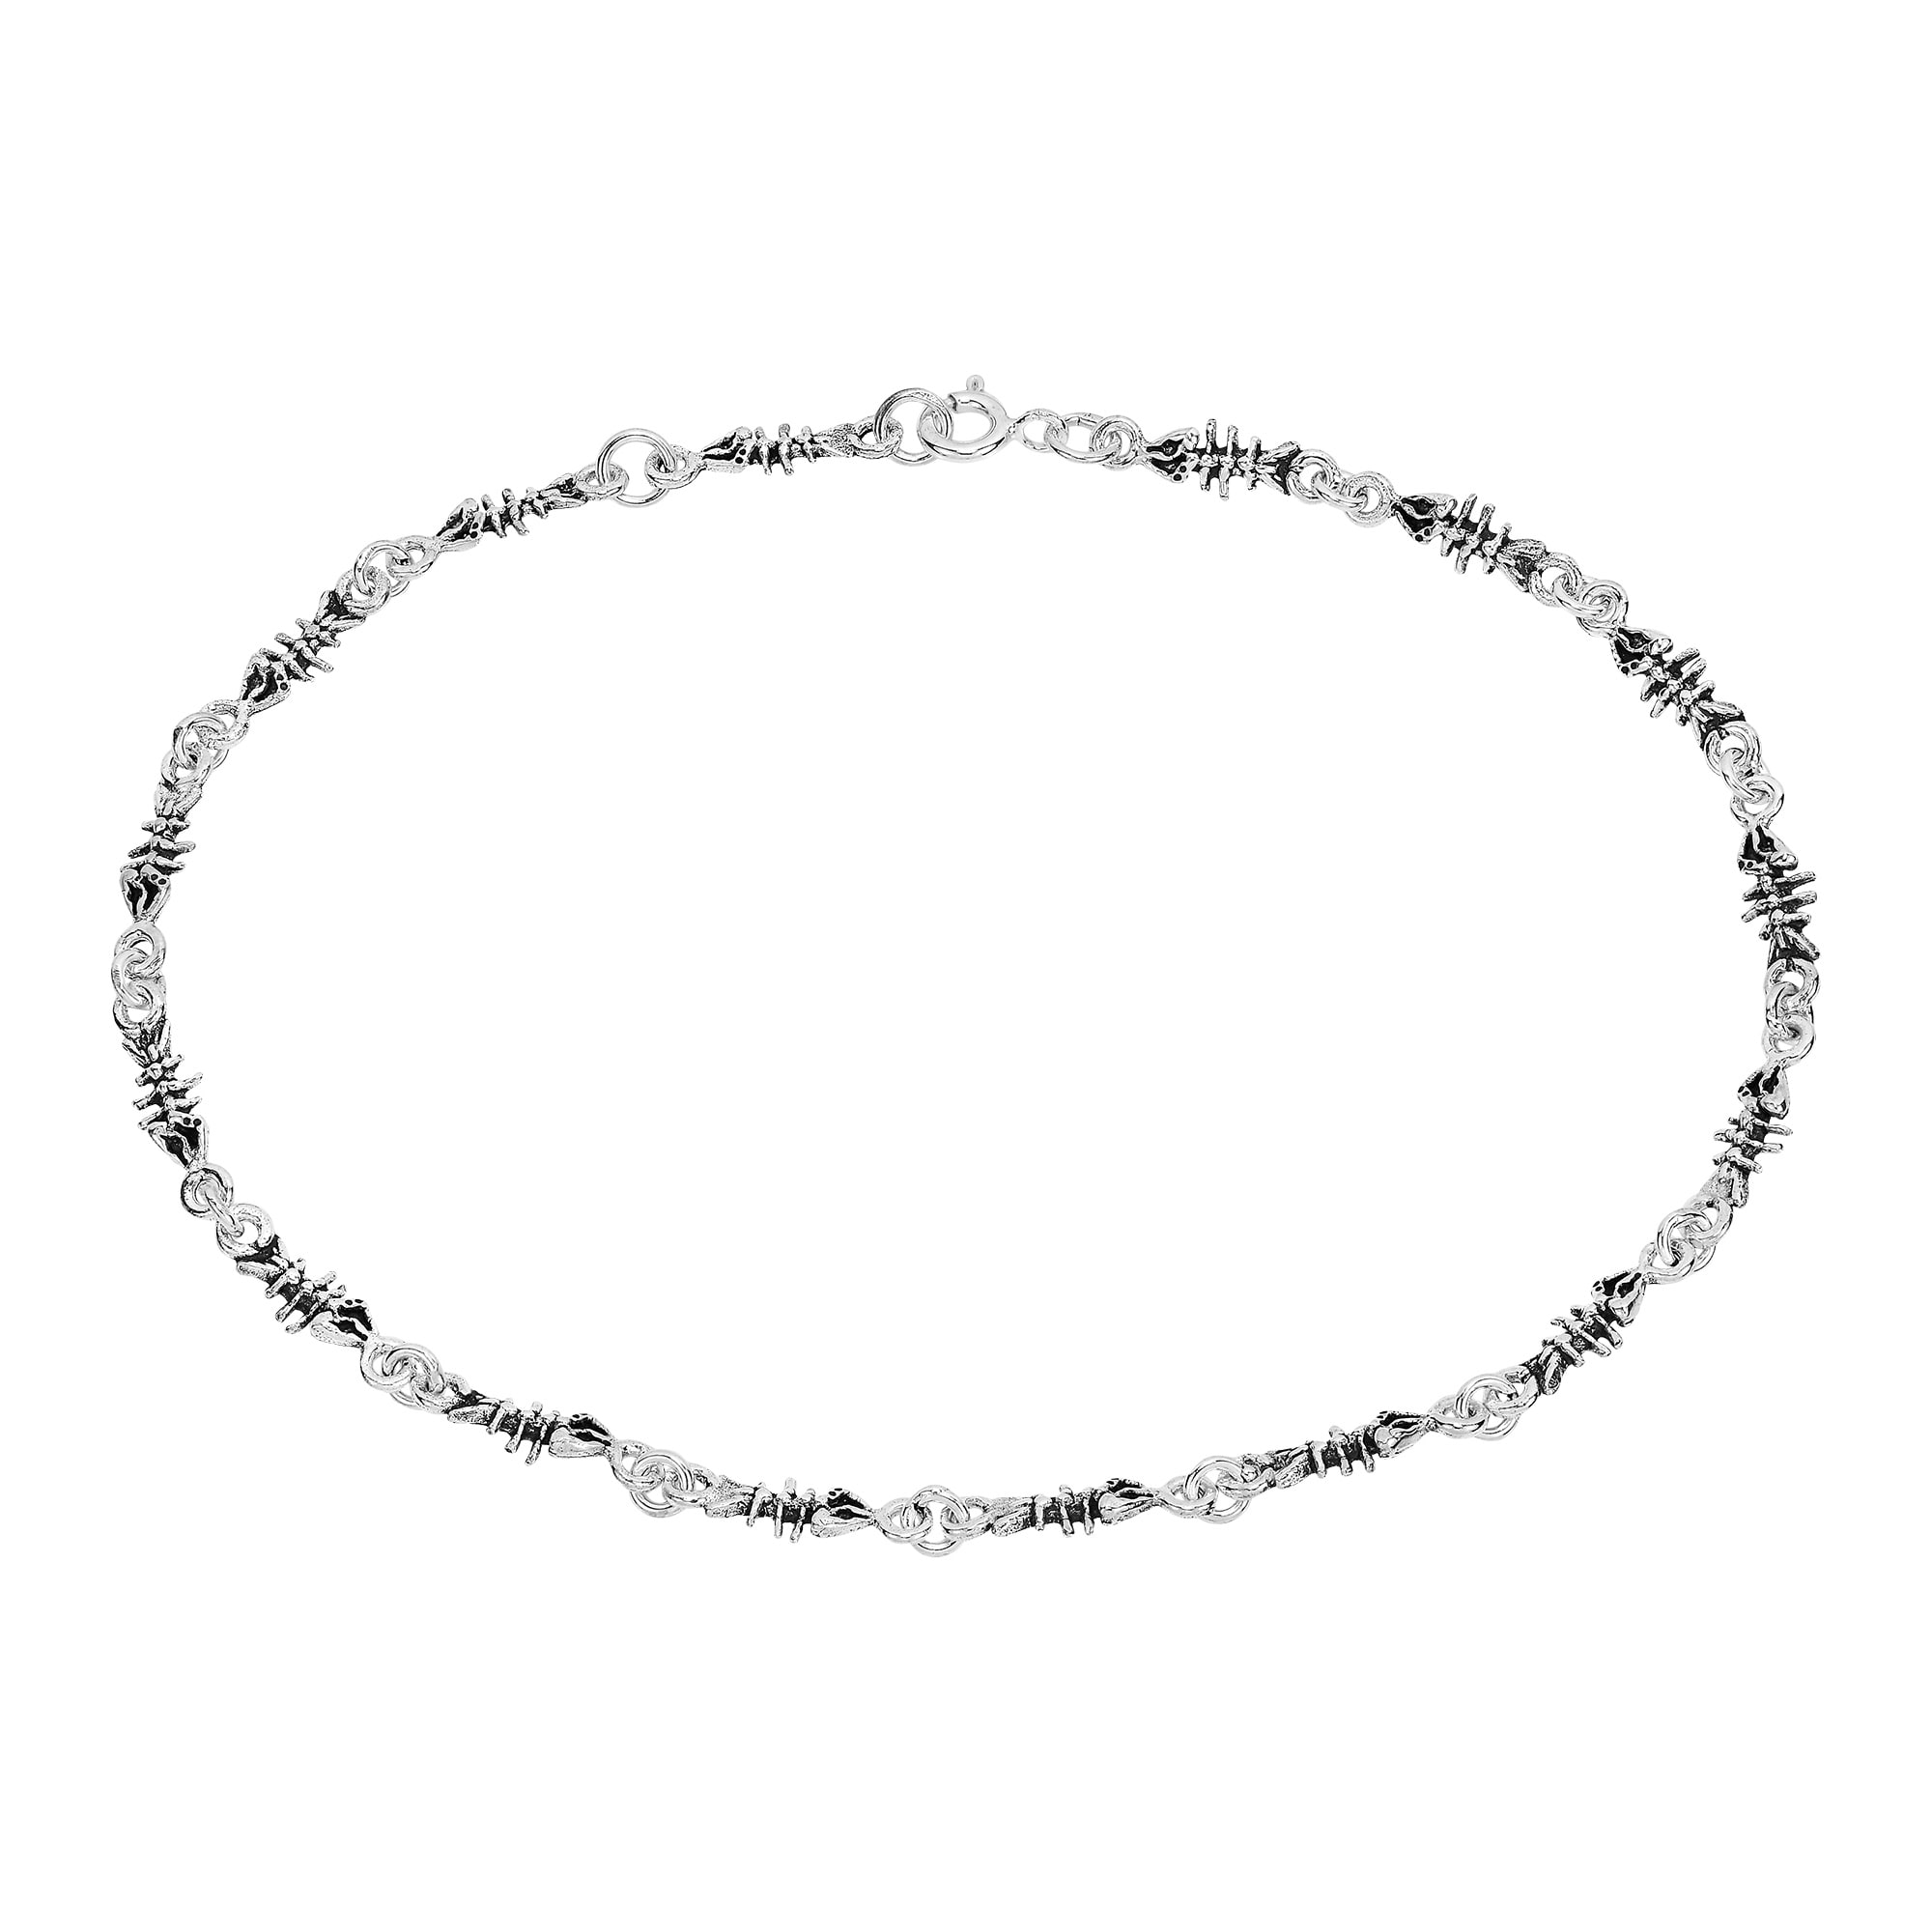 anklet amazing products looks create silver buy online bunch to elegance gorgeous adding anklets